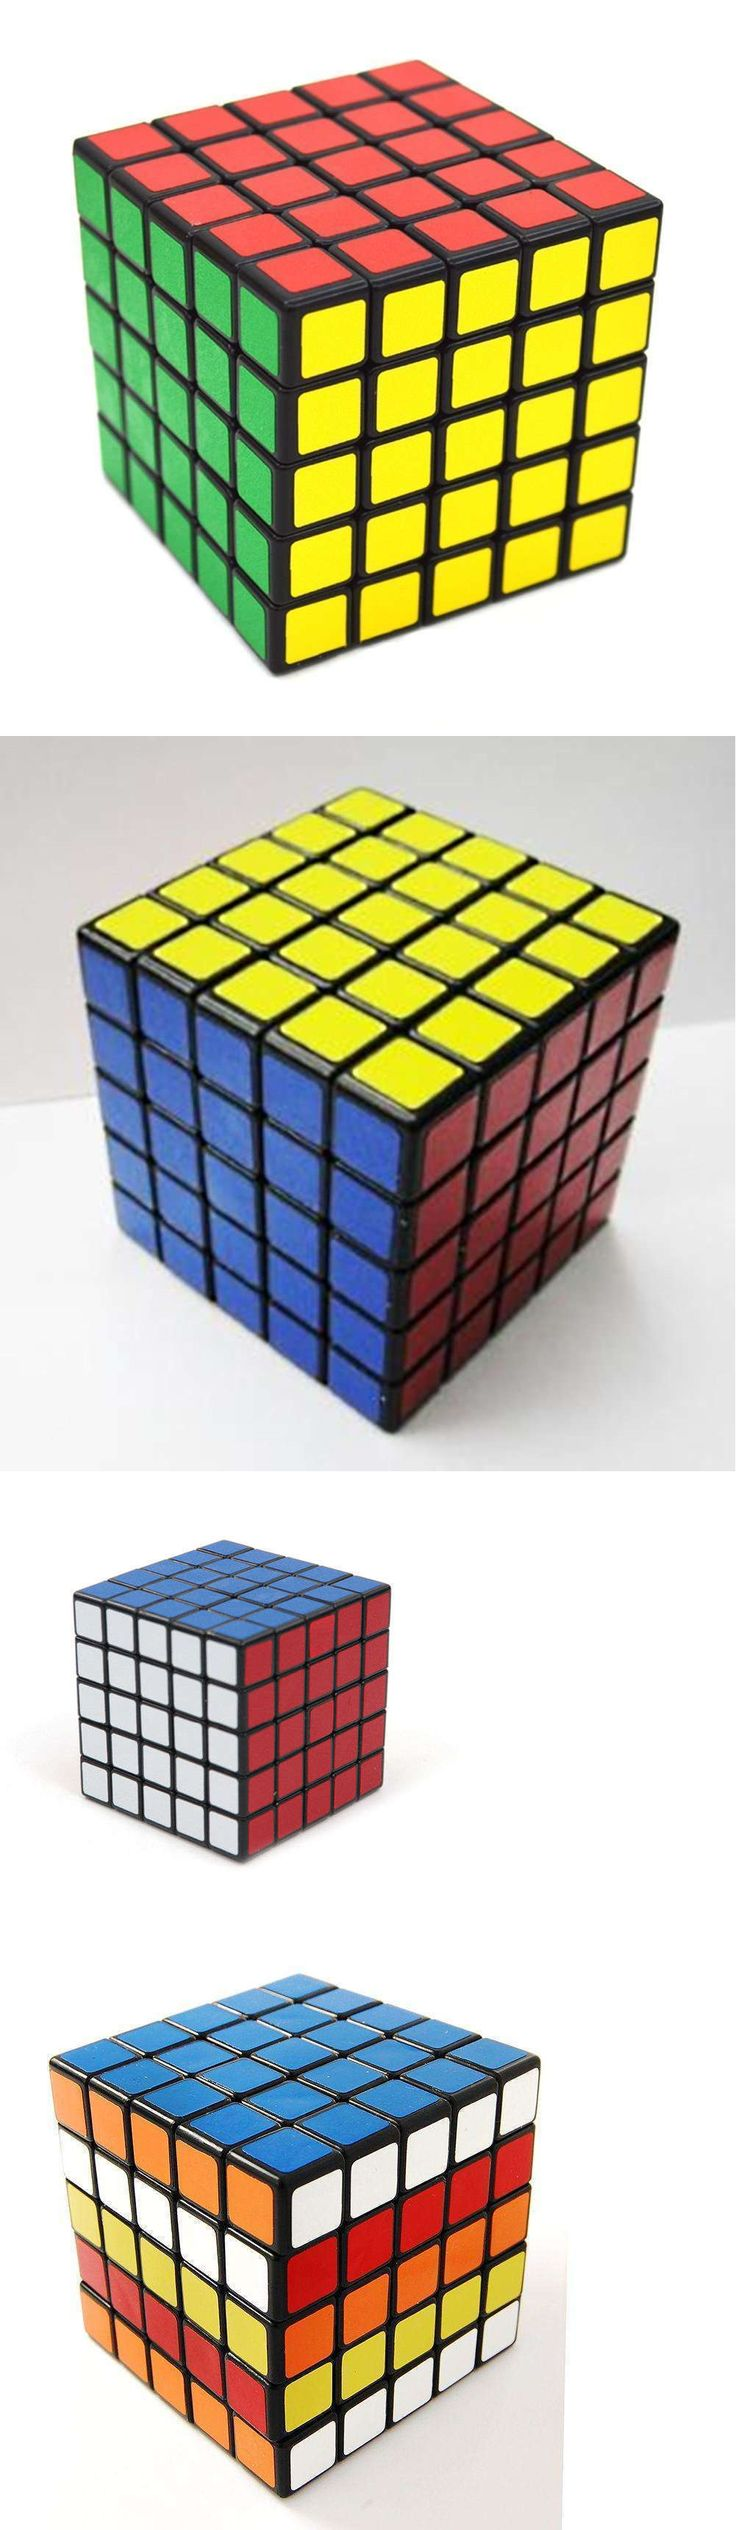 Brain Teasers and Cube Twist 19187: 5X5 Rubik'S Magic Cube Ultra Smooth Speed Puzzle Twist Rubix Kids Gift White N -> BUY IT NOW ONLY: $35.93 on eBay!